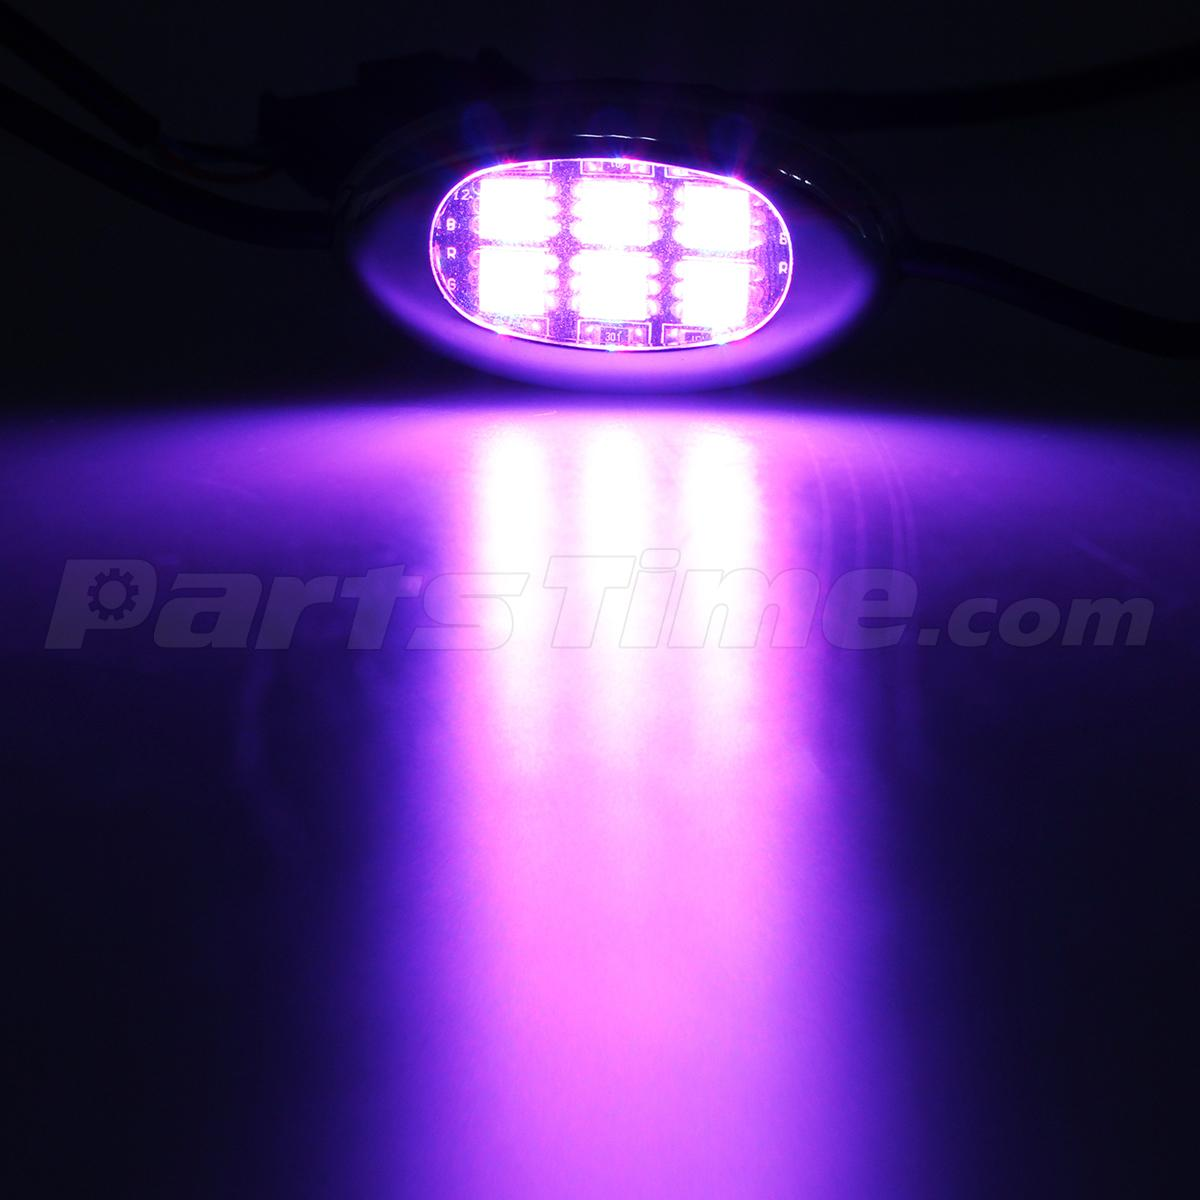 Purple 6 pod motorcycle 36 led underglow neon accent bike lighting kit w switch - Underglow neon ...